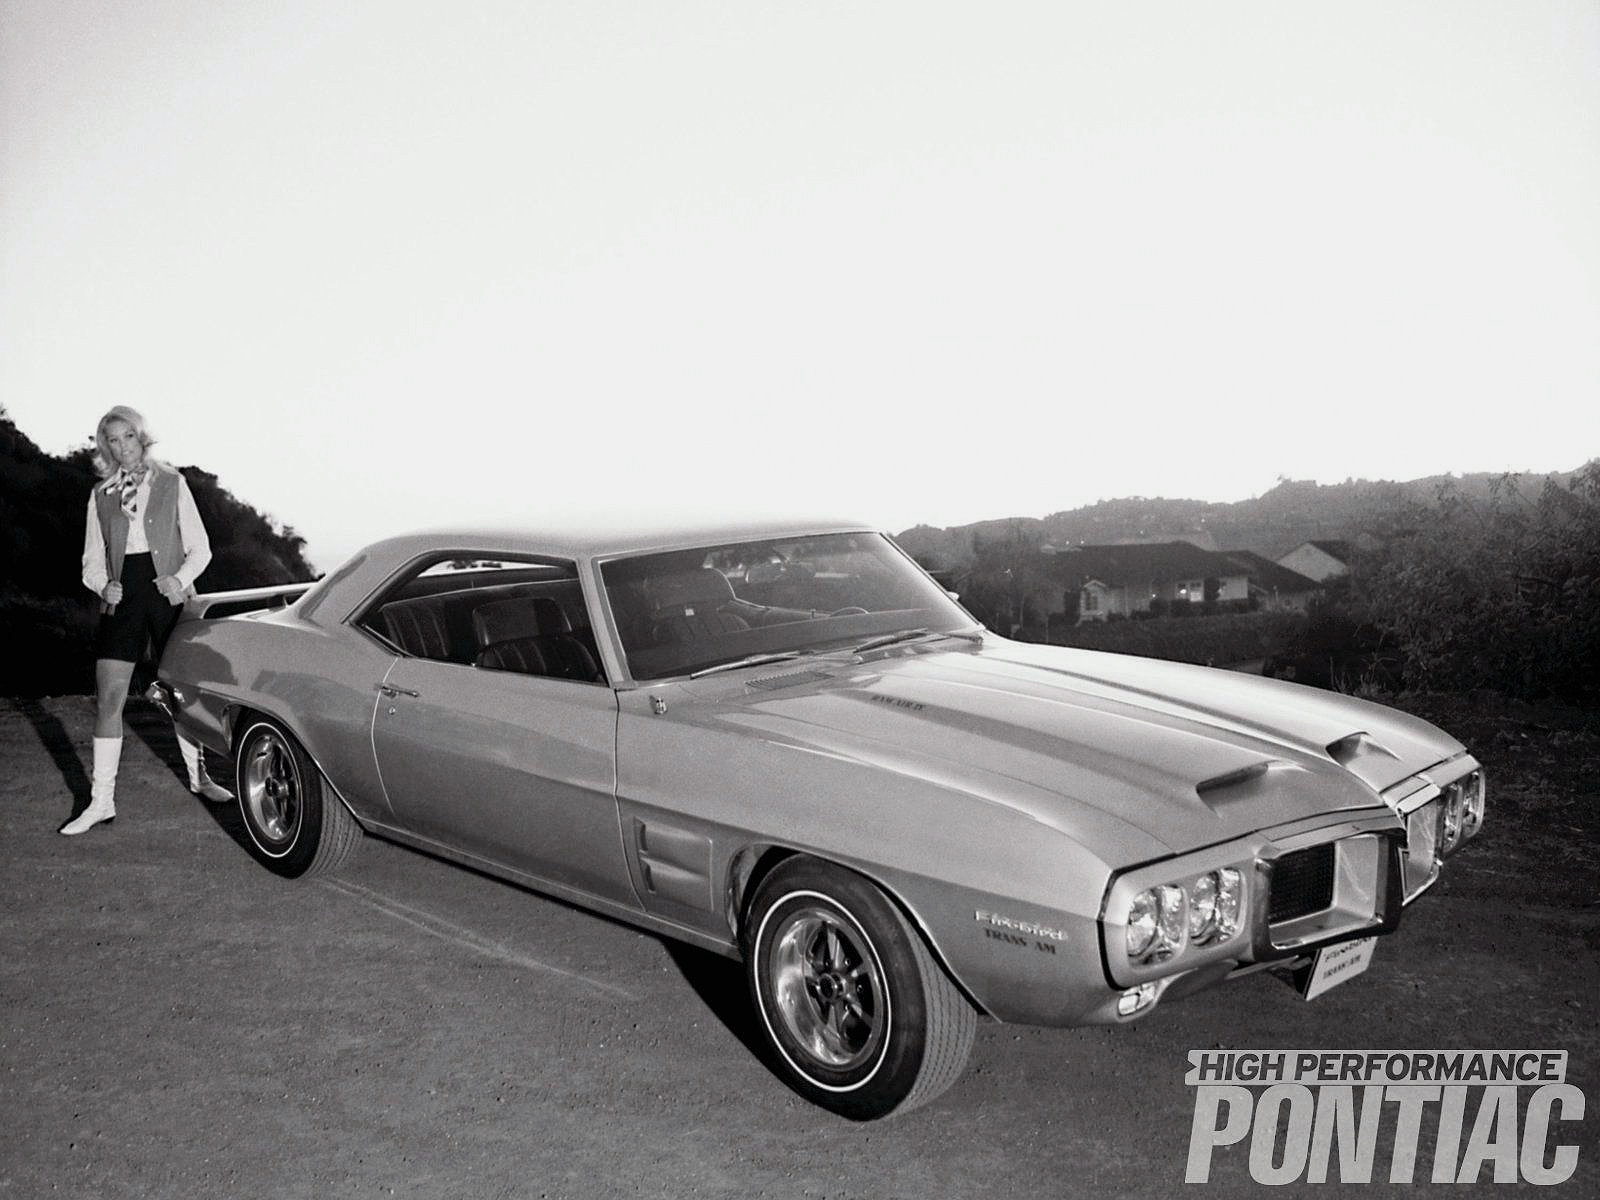 Story About The Prototype 1969 Pontiac Firebird Trans Am